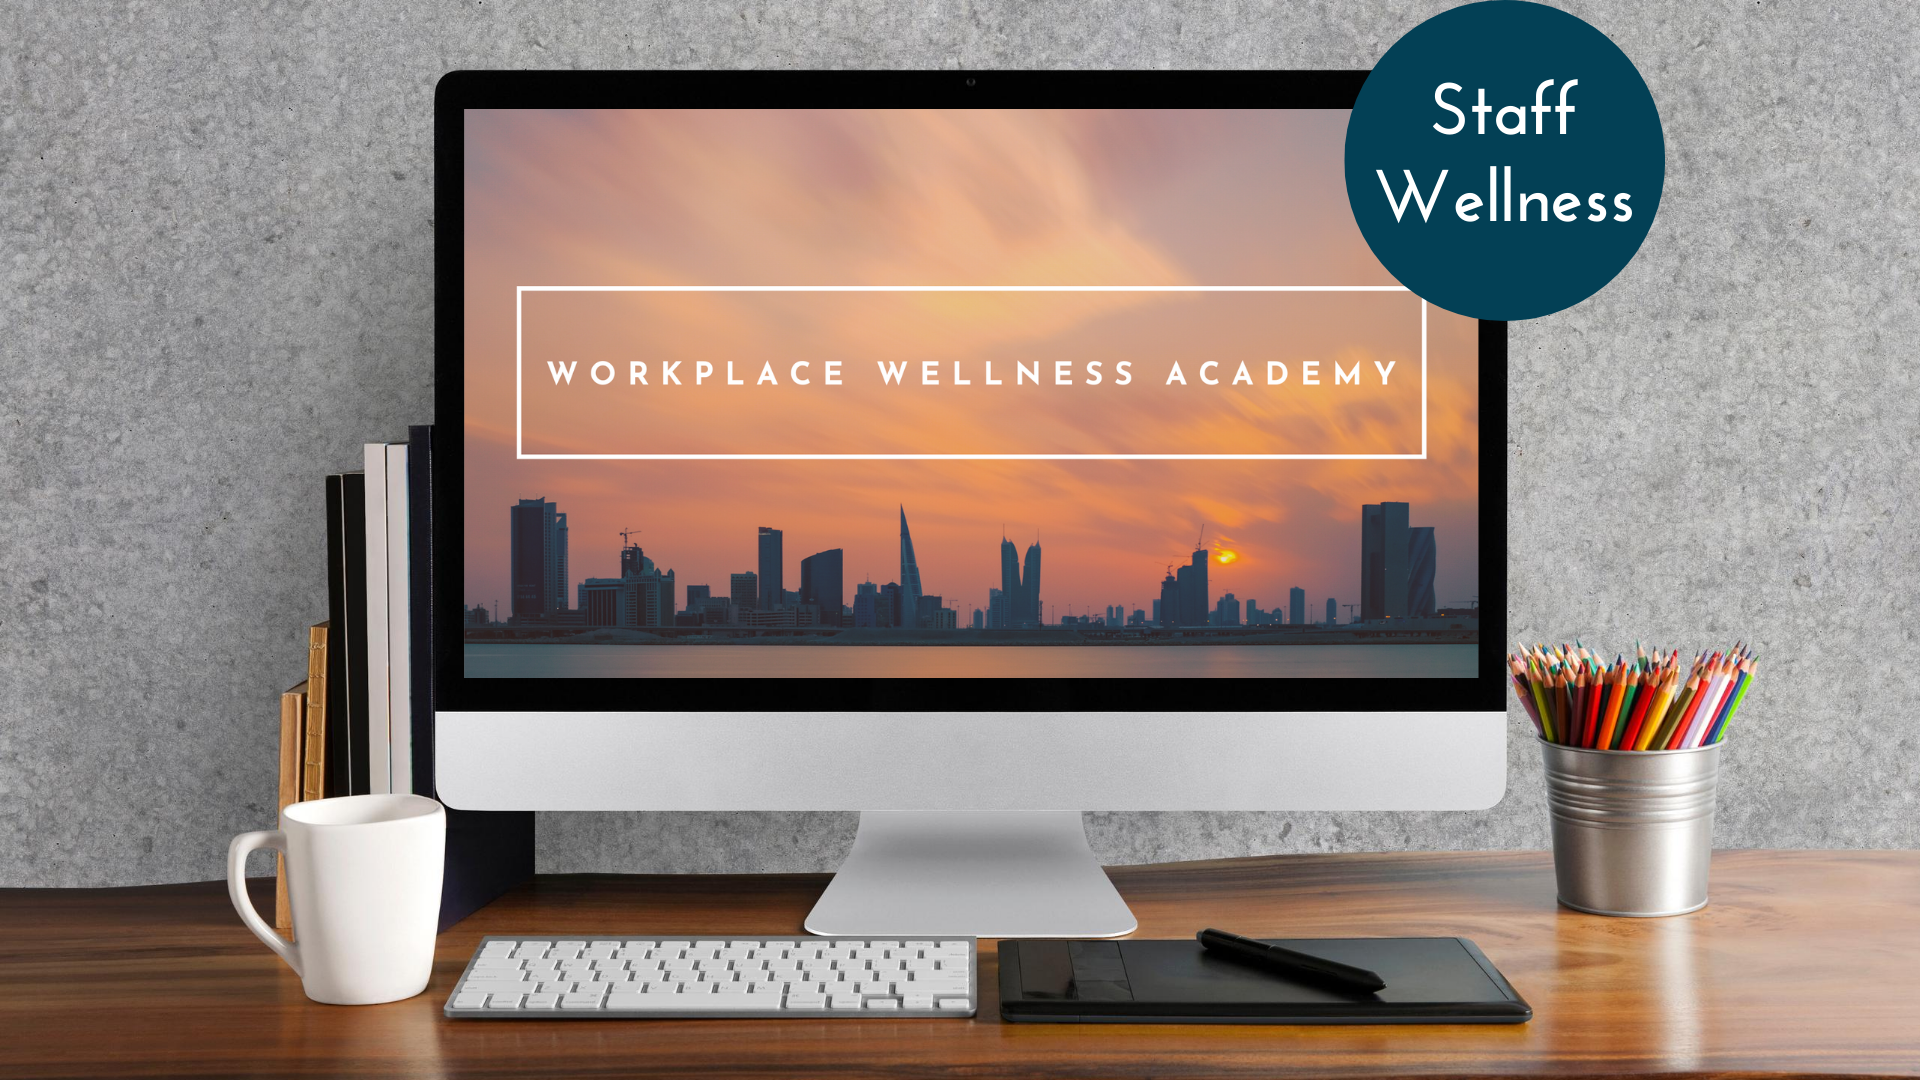 Generation Wellness: Workplace Wellness Academy